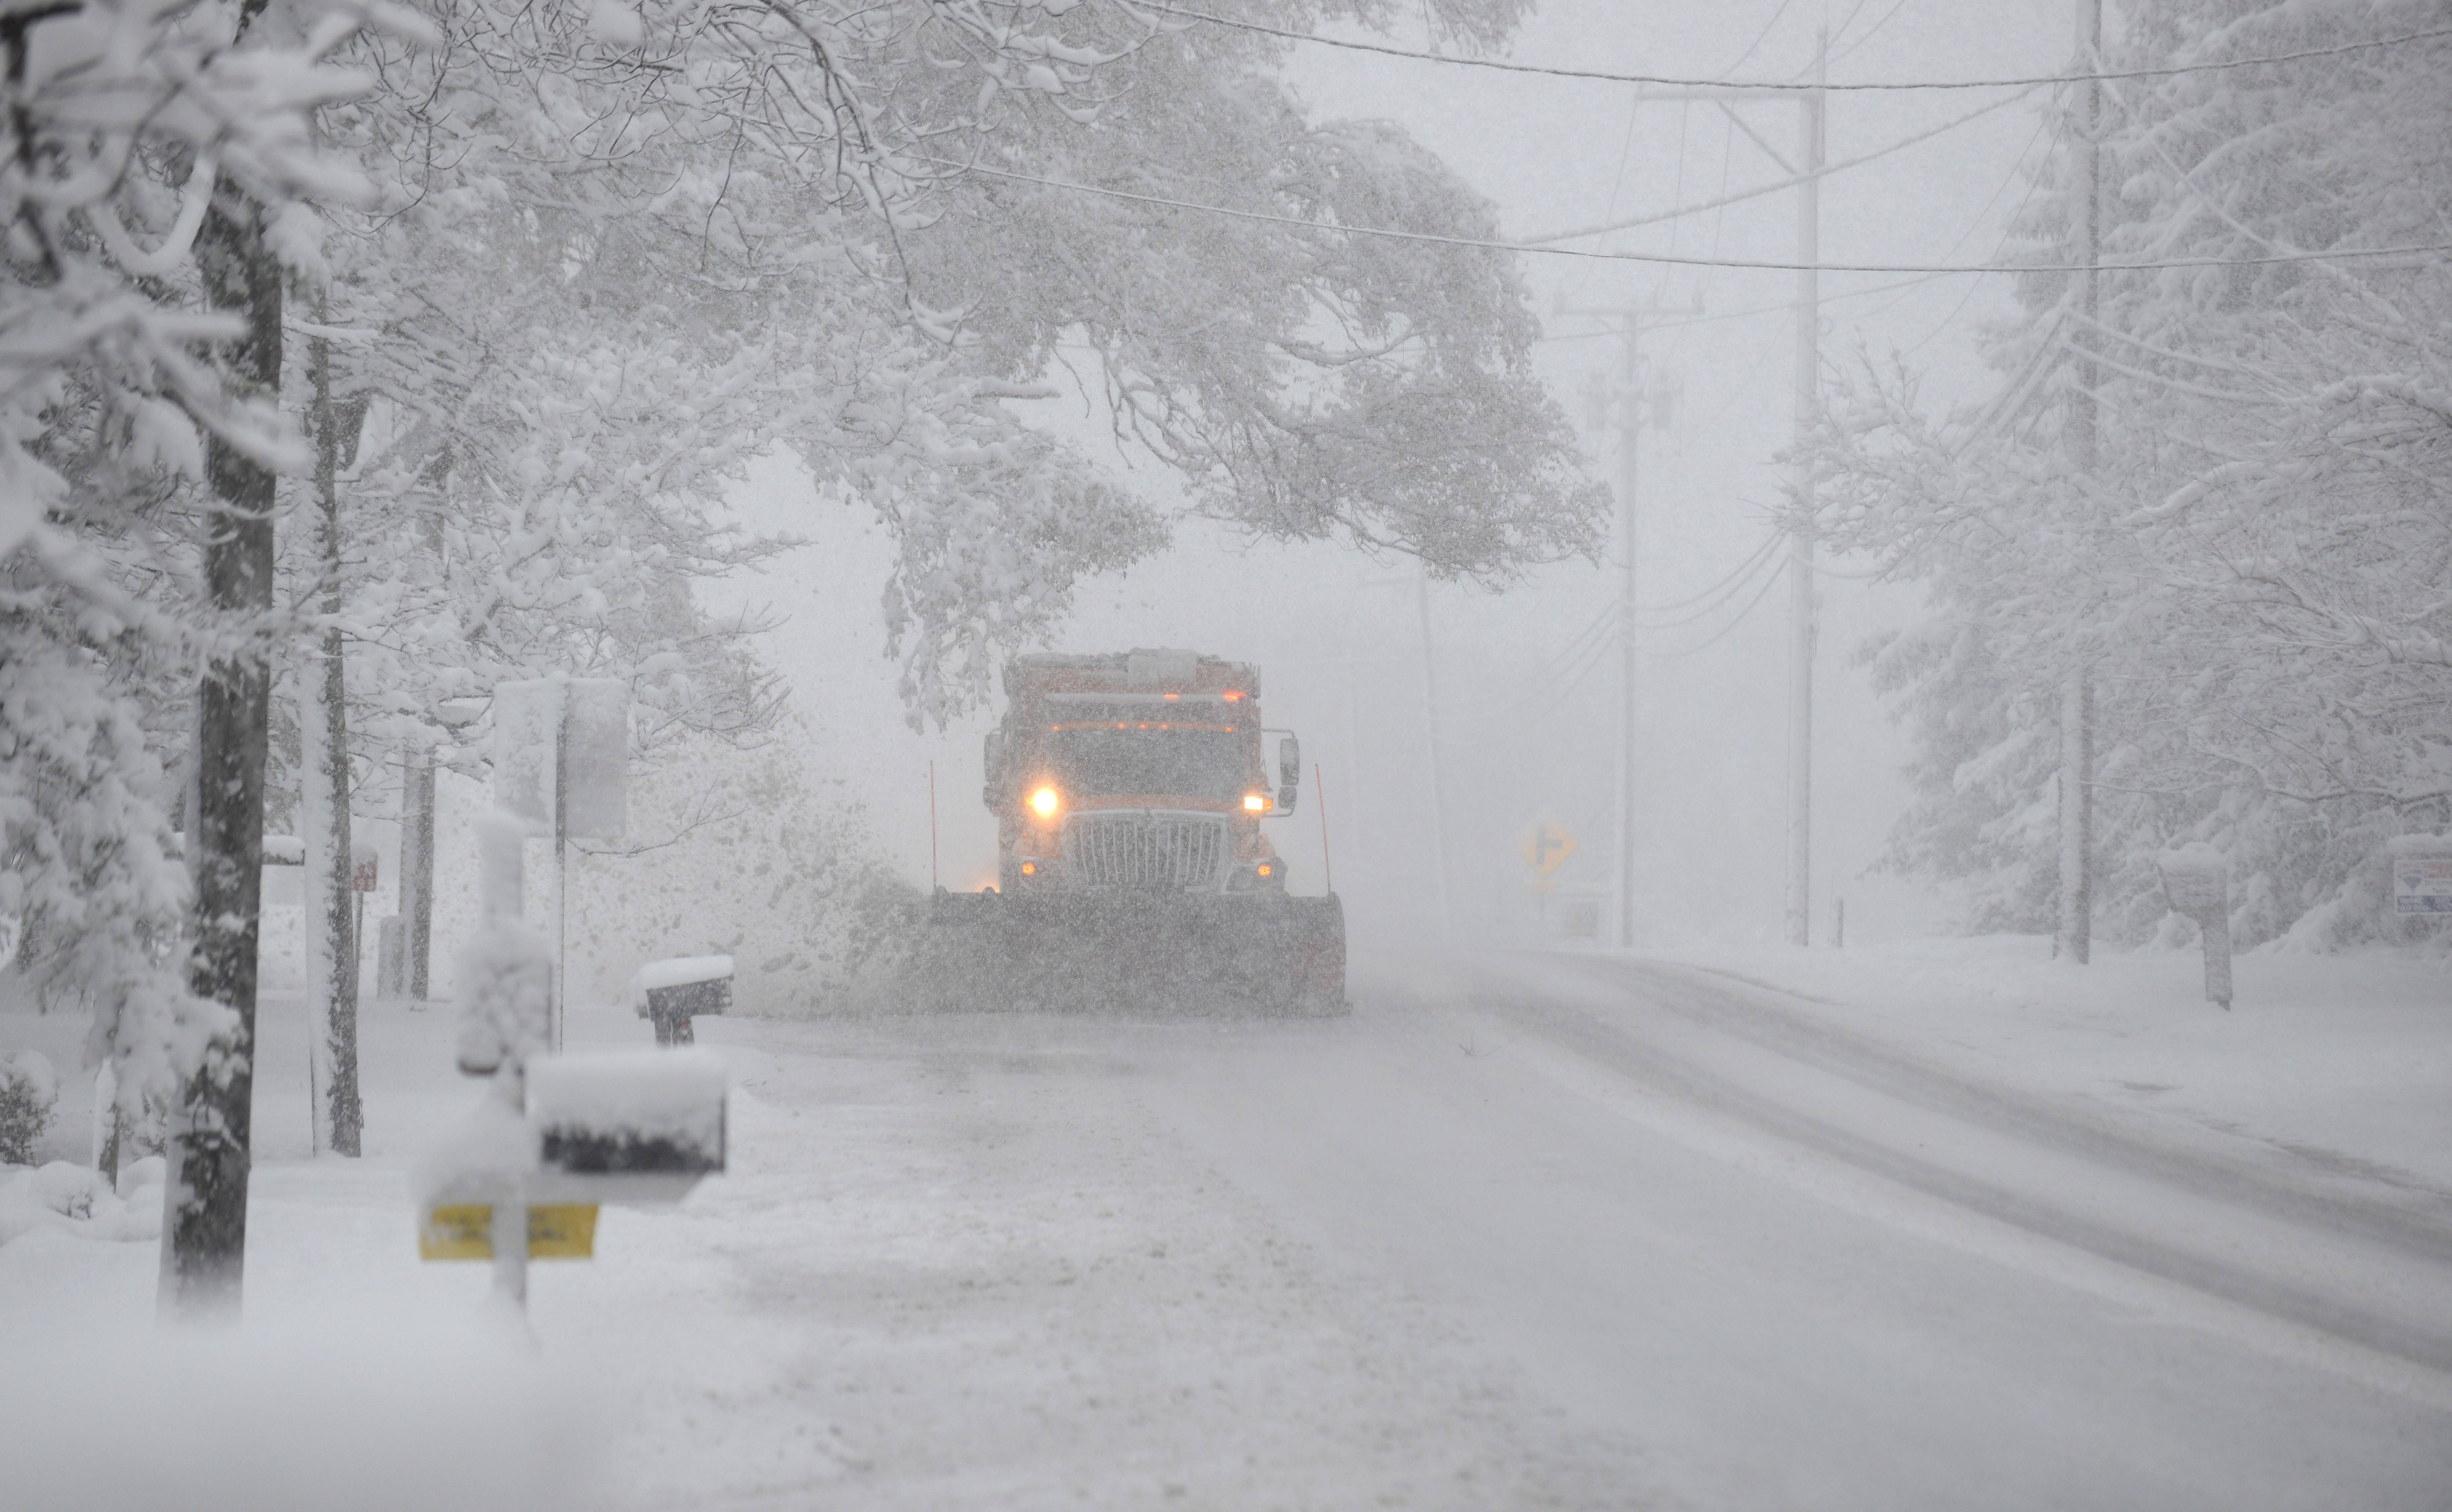 A snowplow clears the northbound lane on Route 47 in Lily Lake Saturday morning.